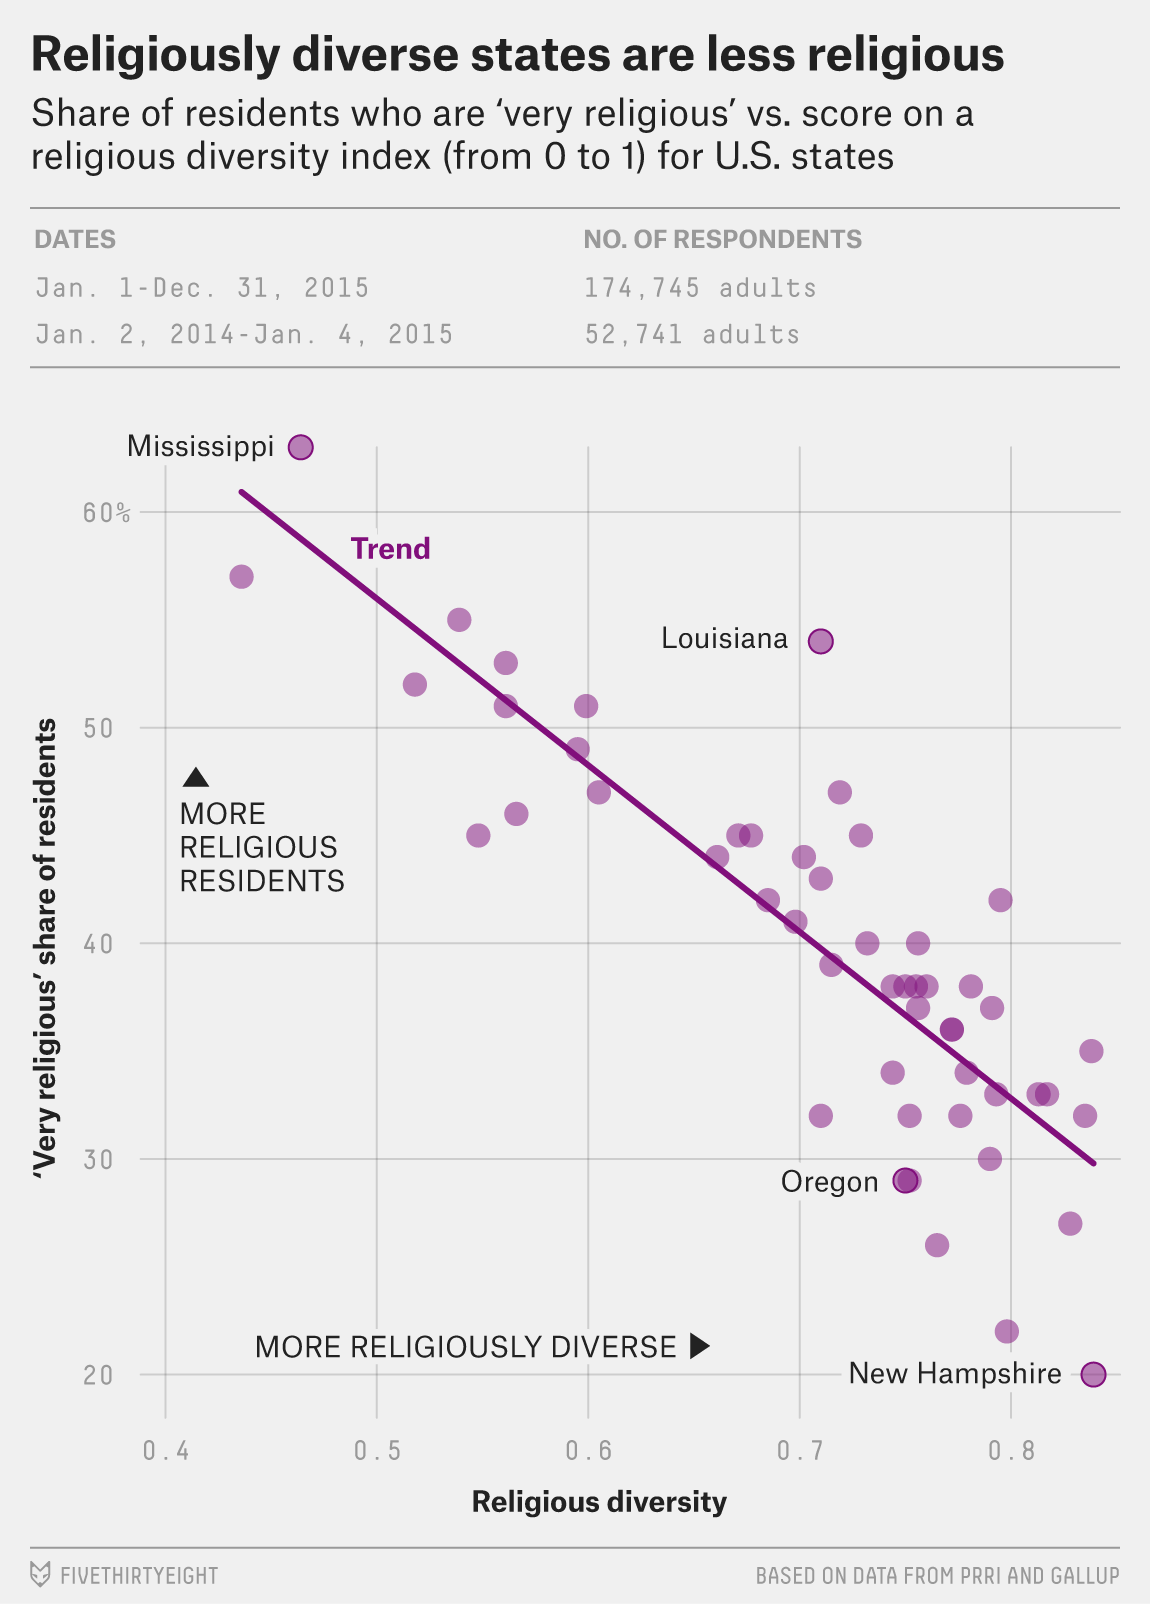 Diversity and religiousness compared